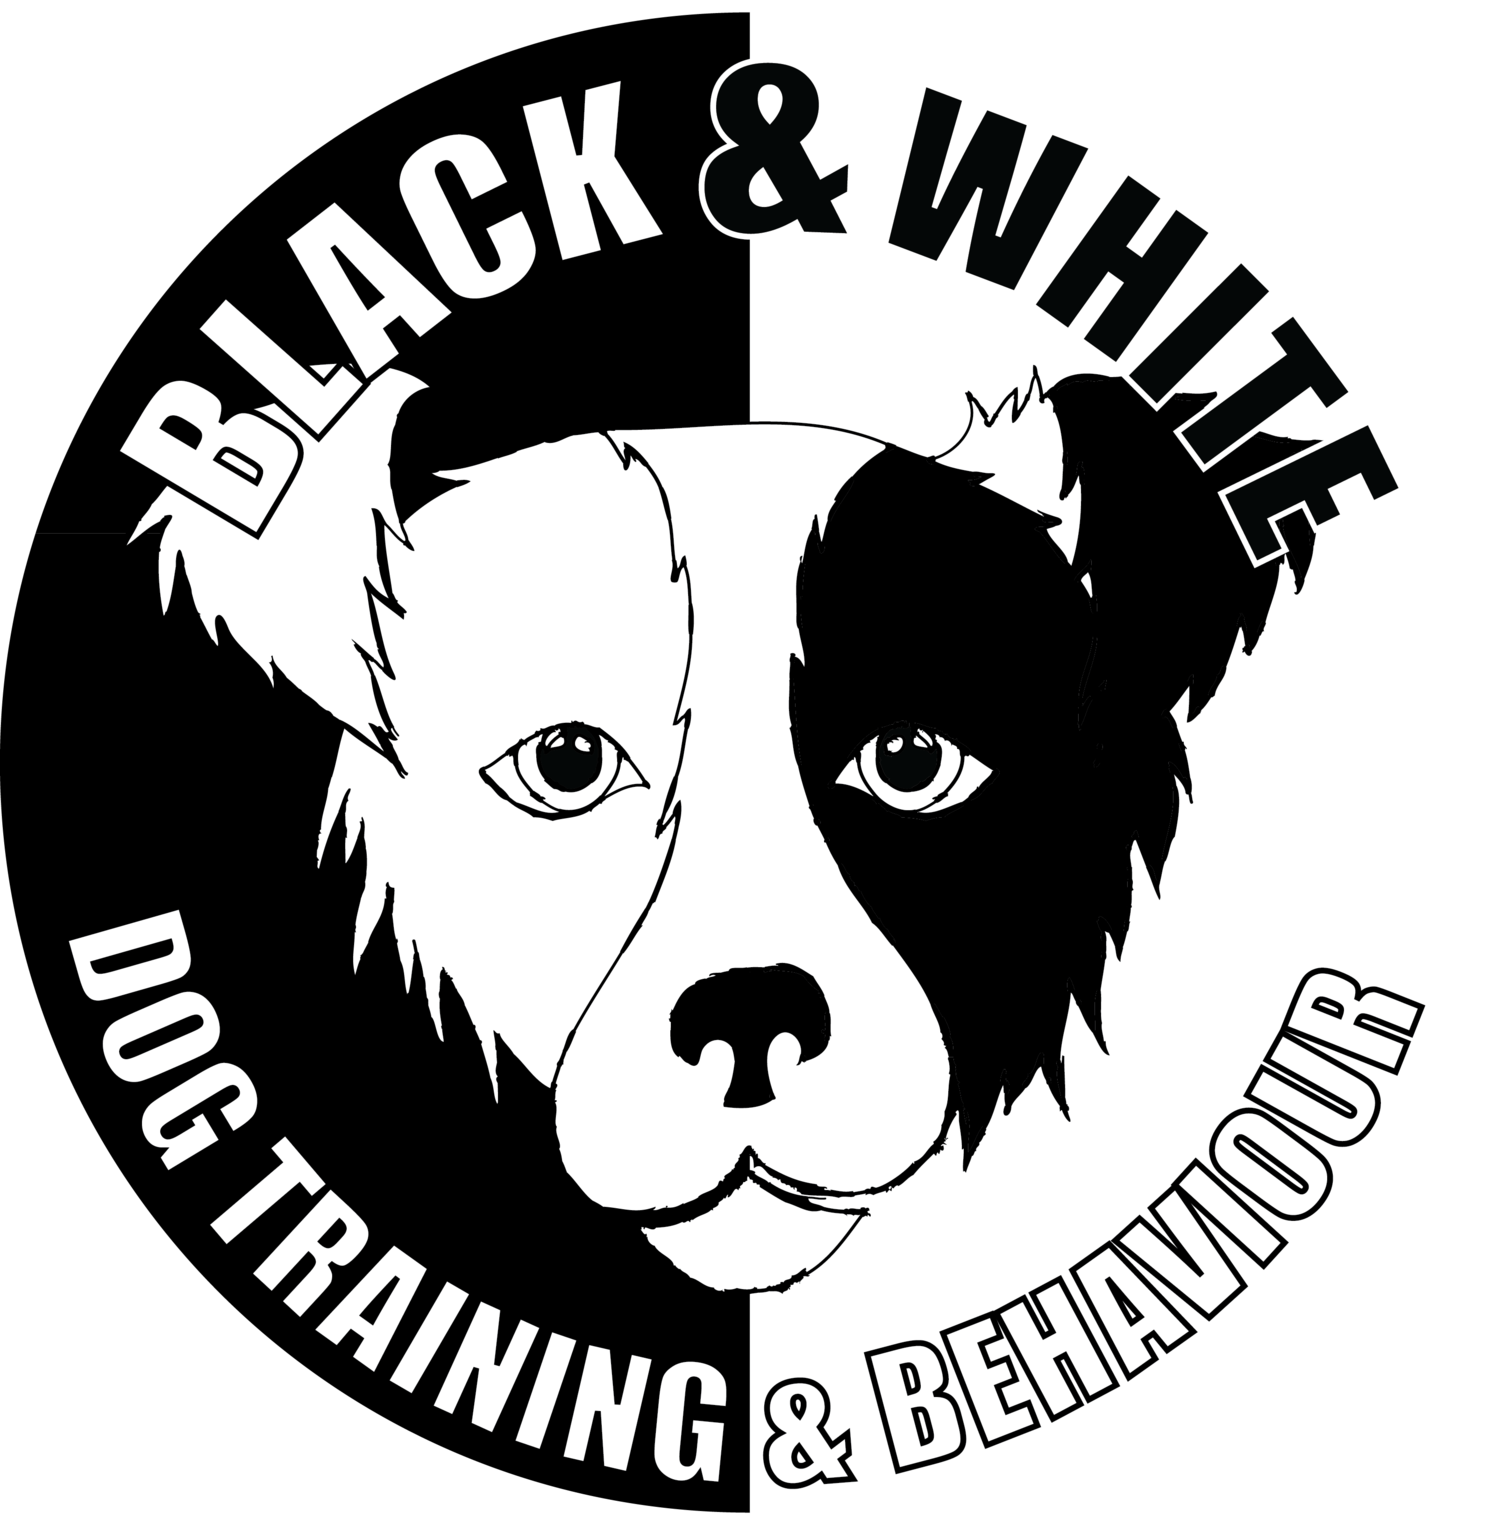 Dog agility clipart clip art freeuse library Black and White Dog Training and Behaviour clip art freeuse library